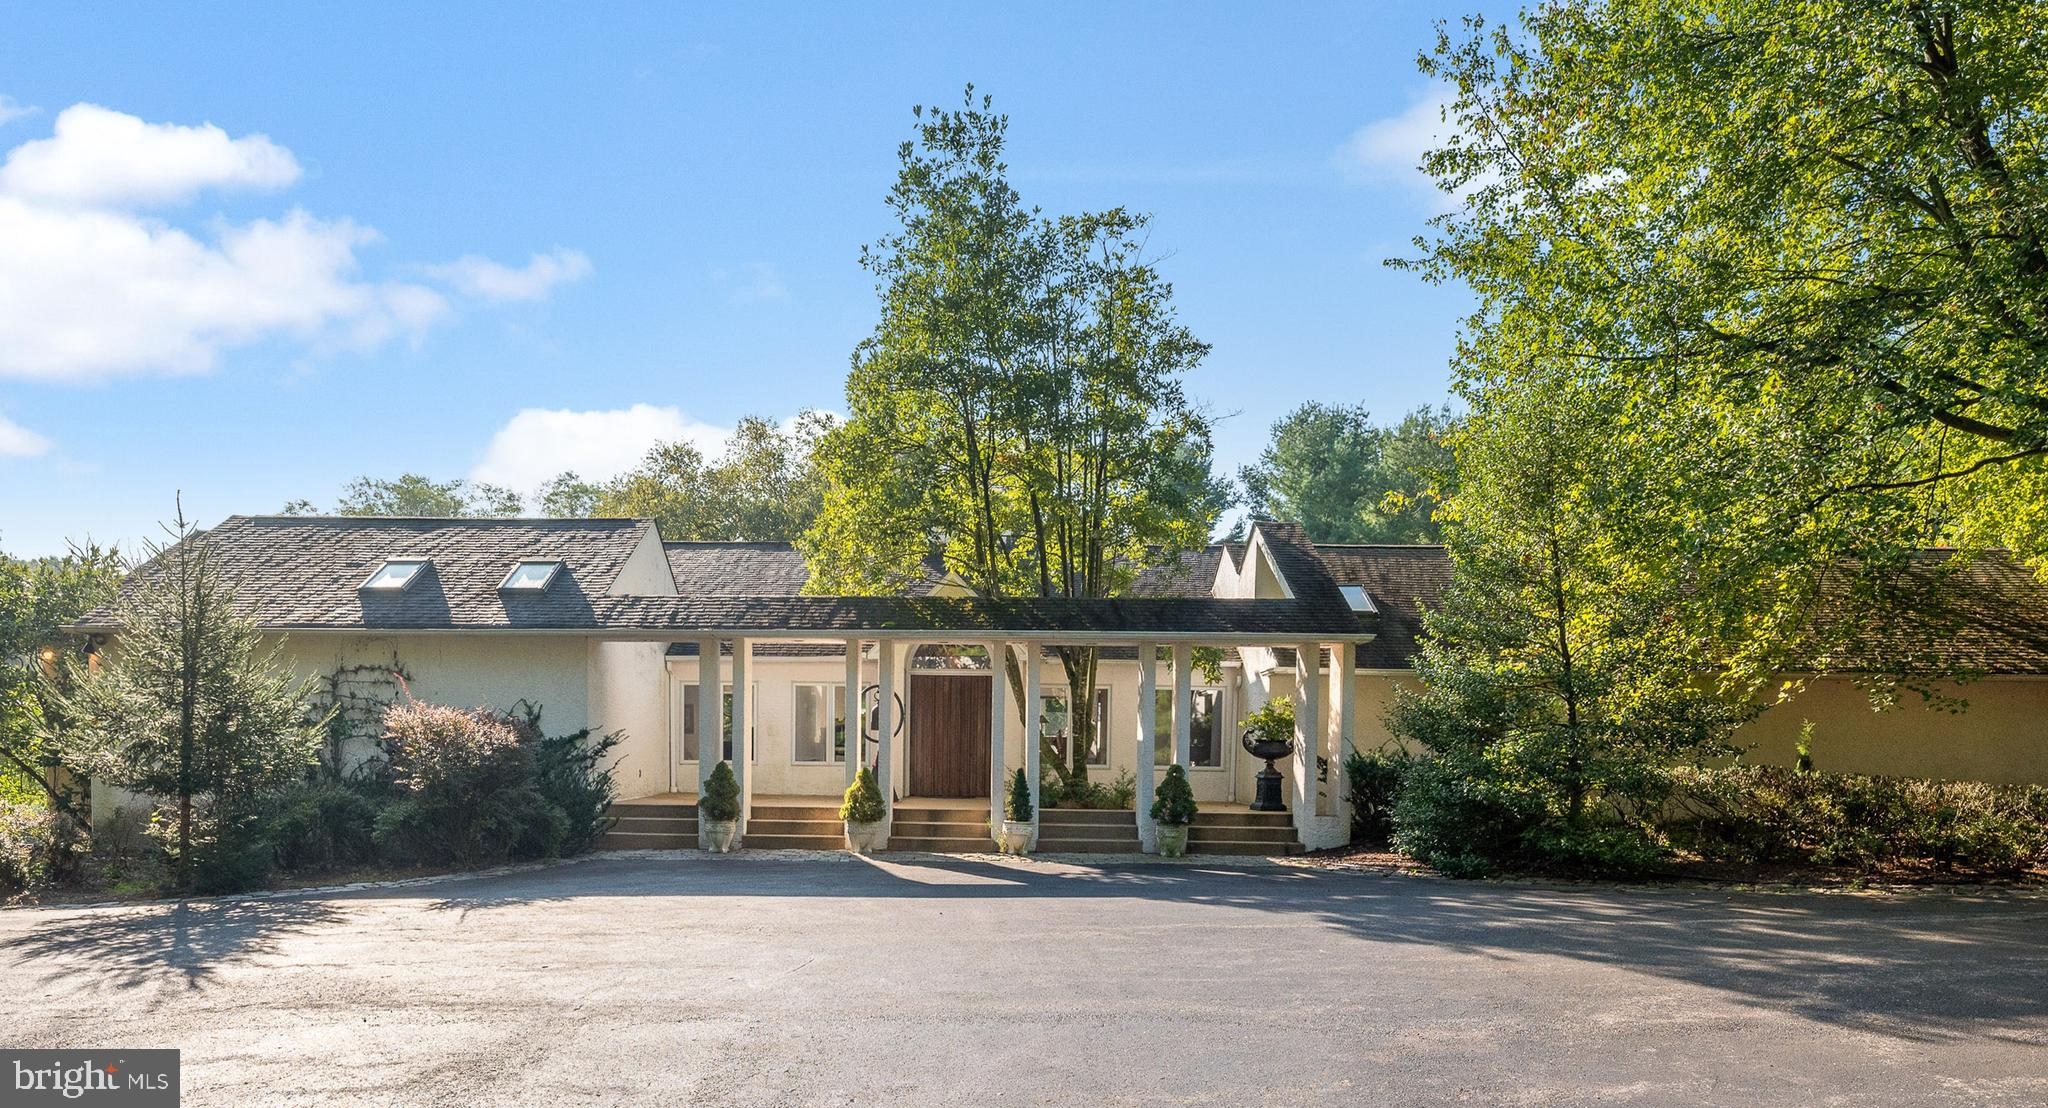 Welcome to one of the most picturesque and private homes situated on 14+ acres in Centreville, Delaware. This contemporary 5,800 square foot home has vaulted ceilings, an open floor plan and abundant windows to take advantage of the natural light. The main level includes an open kitchen to dining room to living room design with a centrally located three-sided fireplace. Floor to ceiling custom built-in bookshelves and cabinetry provide ample storage and give the home a warm glow. Two separately located bedrooms are on the main floor, each with a private bath; the main bedroom suite adjoins the expansive sun filled art studio with large windows on three sides. The lower-level main bedroom suite includes a sitting room, walk-in wardrobe closet with island storage, storage closet and private bathroom housing a Jacuzzi bathtub and an oversized shower. A perfect location to create the estate home of your dreams. This unique property with over 14 acres consists of three separate parcels of land with Delmarva Power supplied electric and natural gas. The home is located on a usable 3.32-acre lot with an adjacent rolling 3.32-acre lot.  In addition, there is an 8.19-acre lot spanning the entire back property line of the two front lots. The 8.19-acre lot has a separately deeded easement access on another area of Selborne Drive and is perfectly situated for its own separate driveway. Please contact listing agent George Hobbs for additional information 302.545.5263